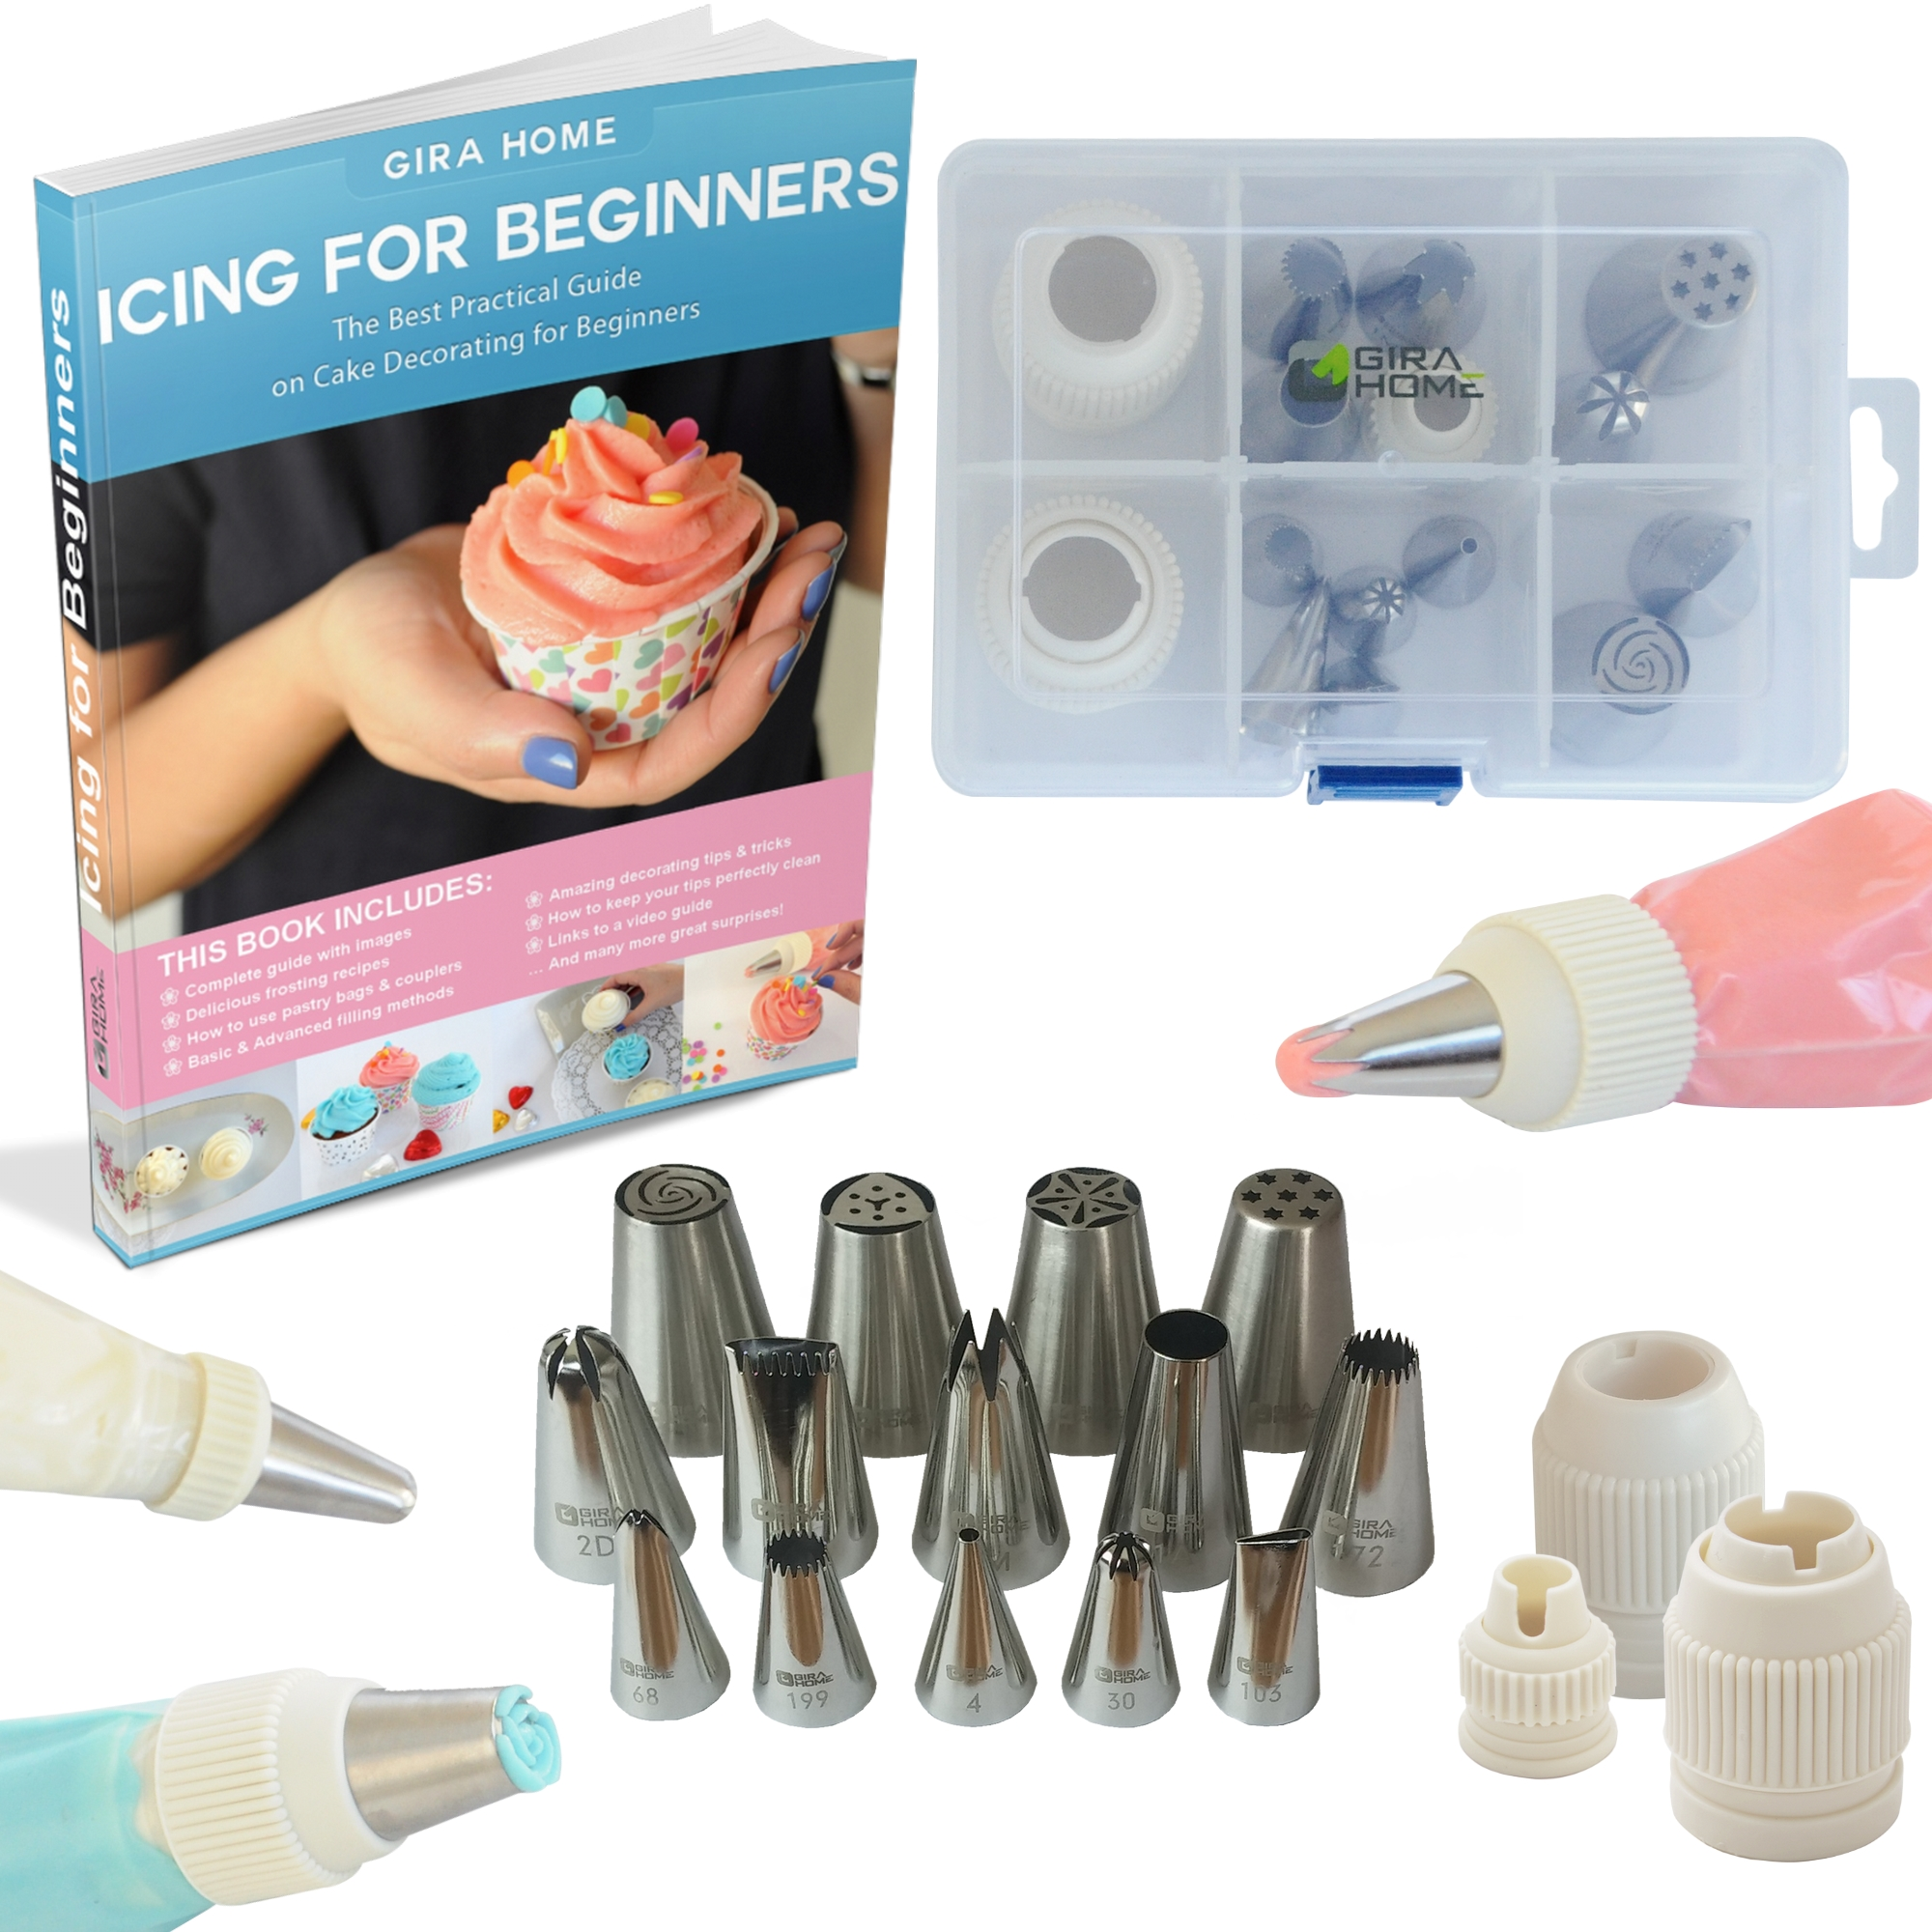 Cake Decorating Company Voucher Code : Premium Cake Decorating Tips Kit